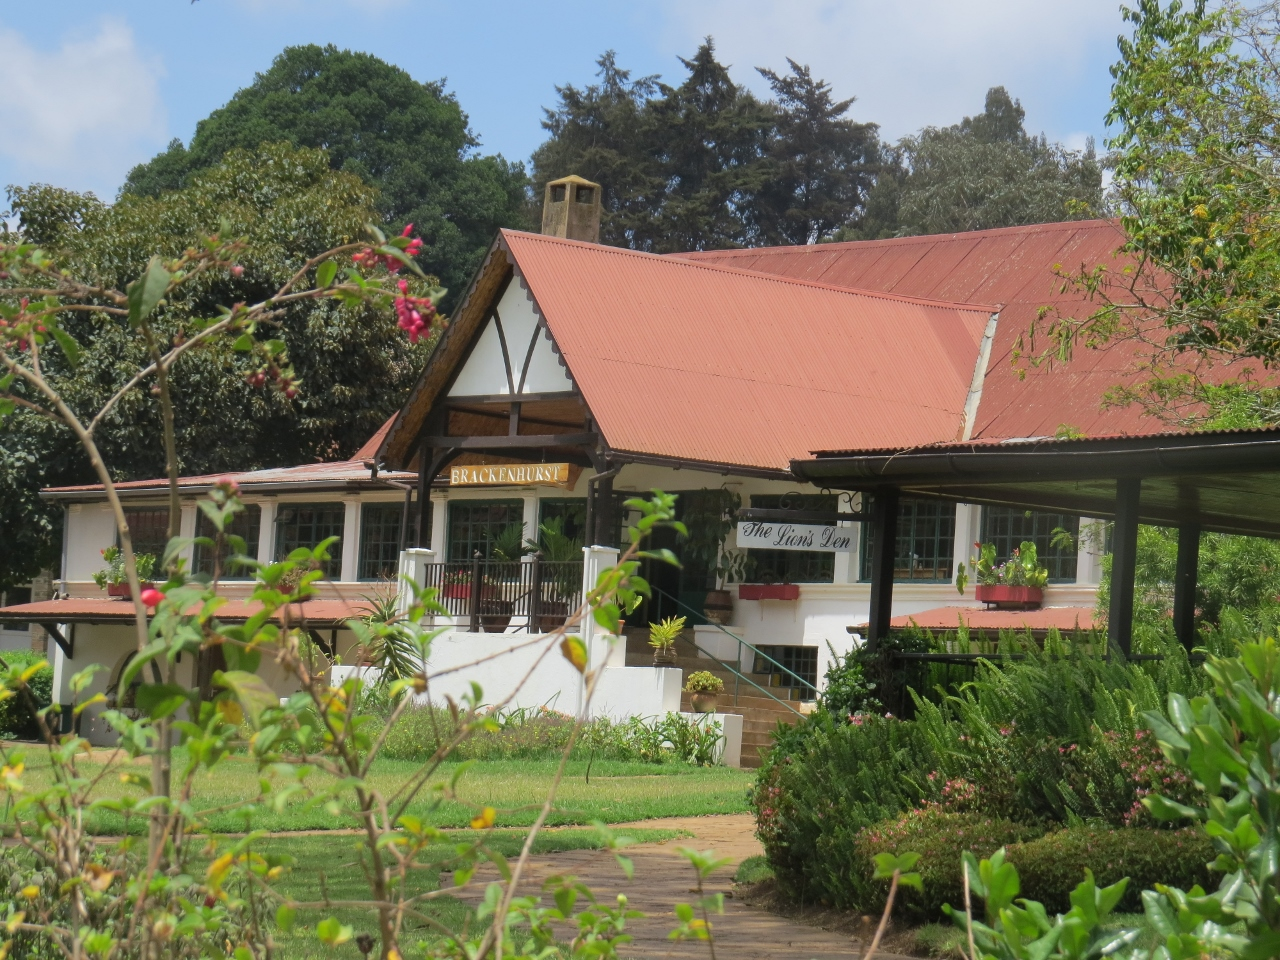 Brackenhurst Conference Centre and Botanic Gardens in Tigoni, 25-km northwest of Nairobi Copyright Rupi Mangat